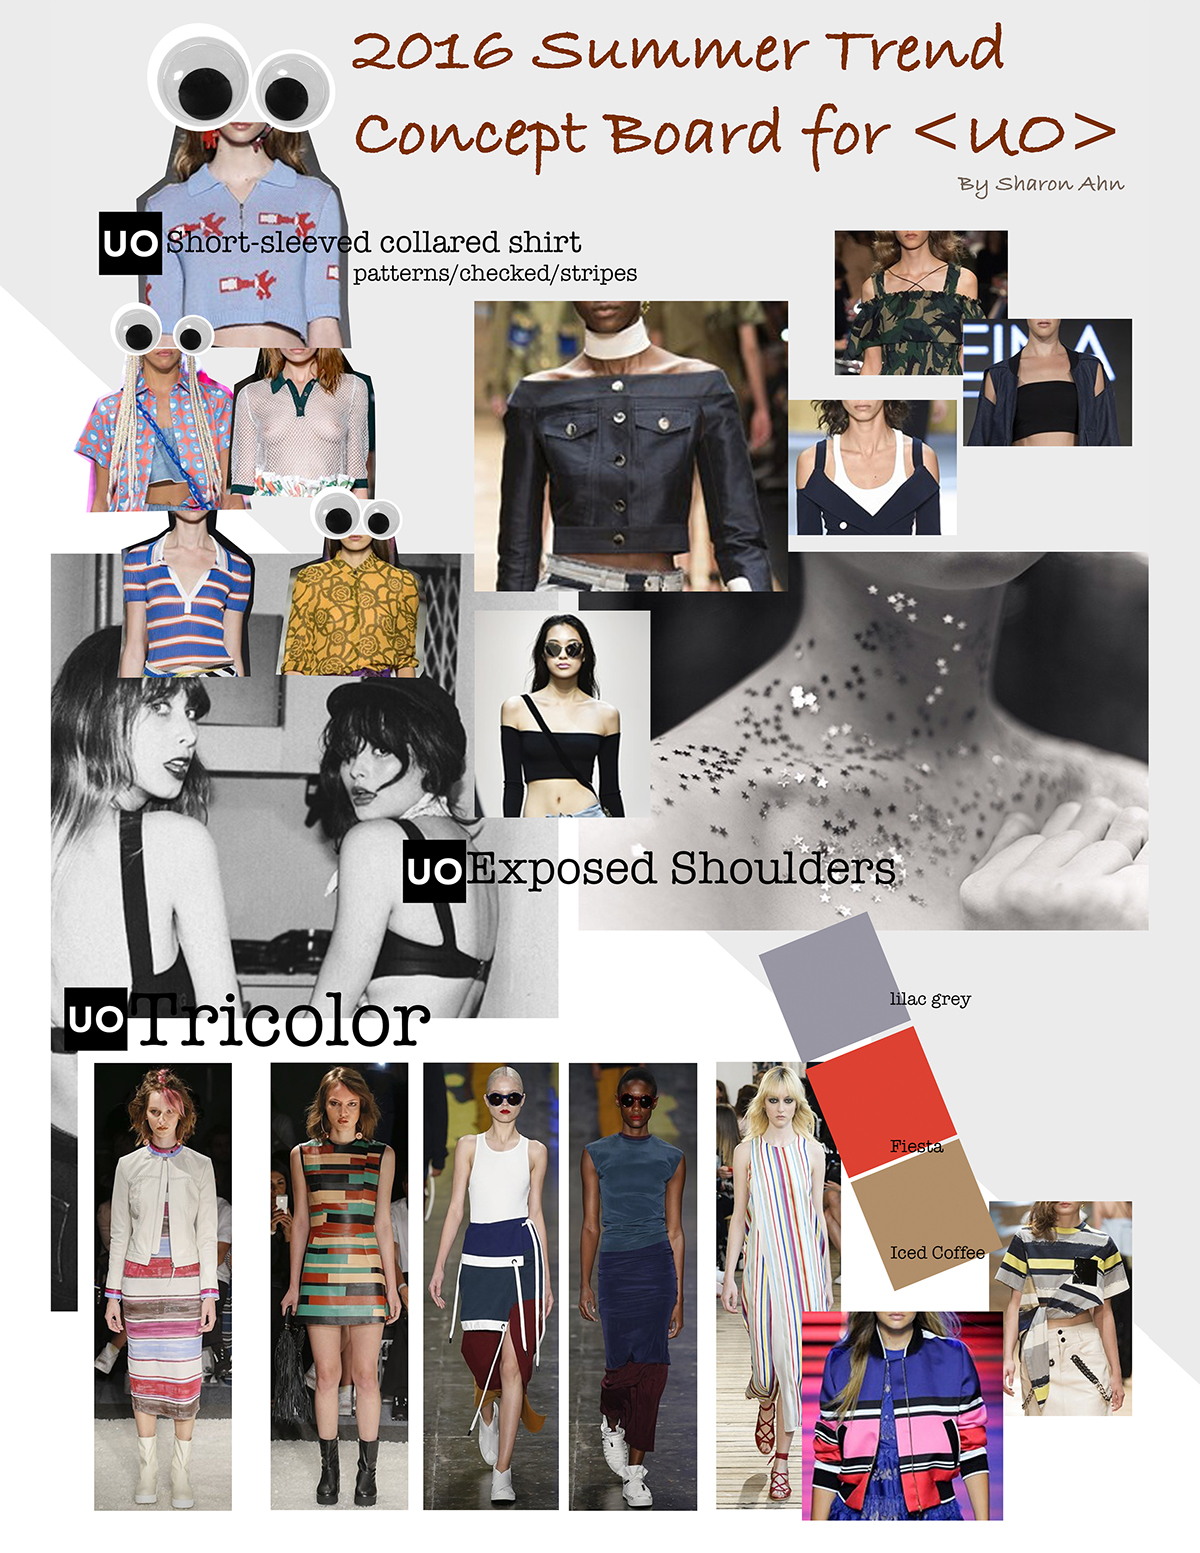 2016 Summer Trend Concept Board For Urban Outfitters On Scad Portfolios